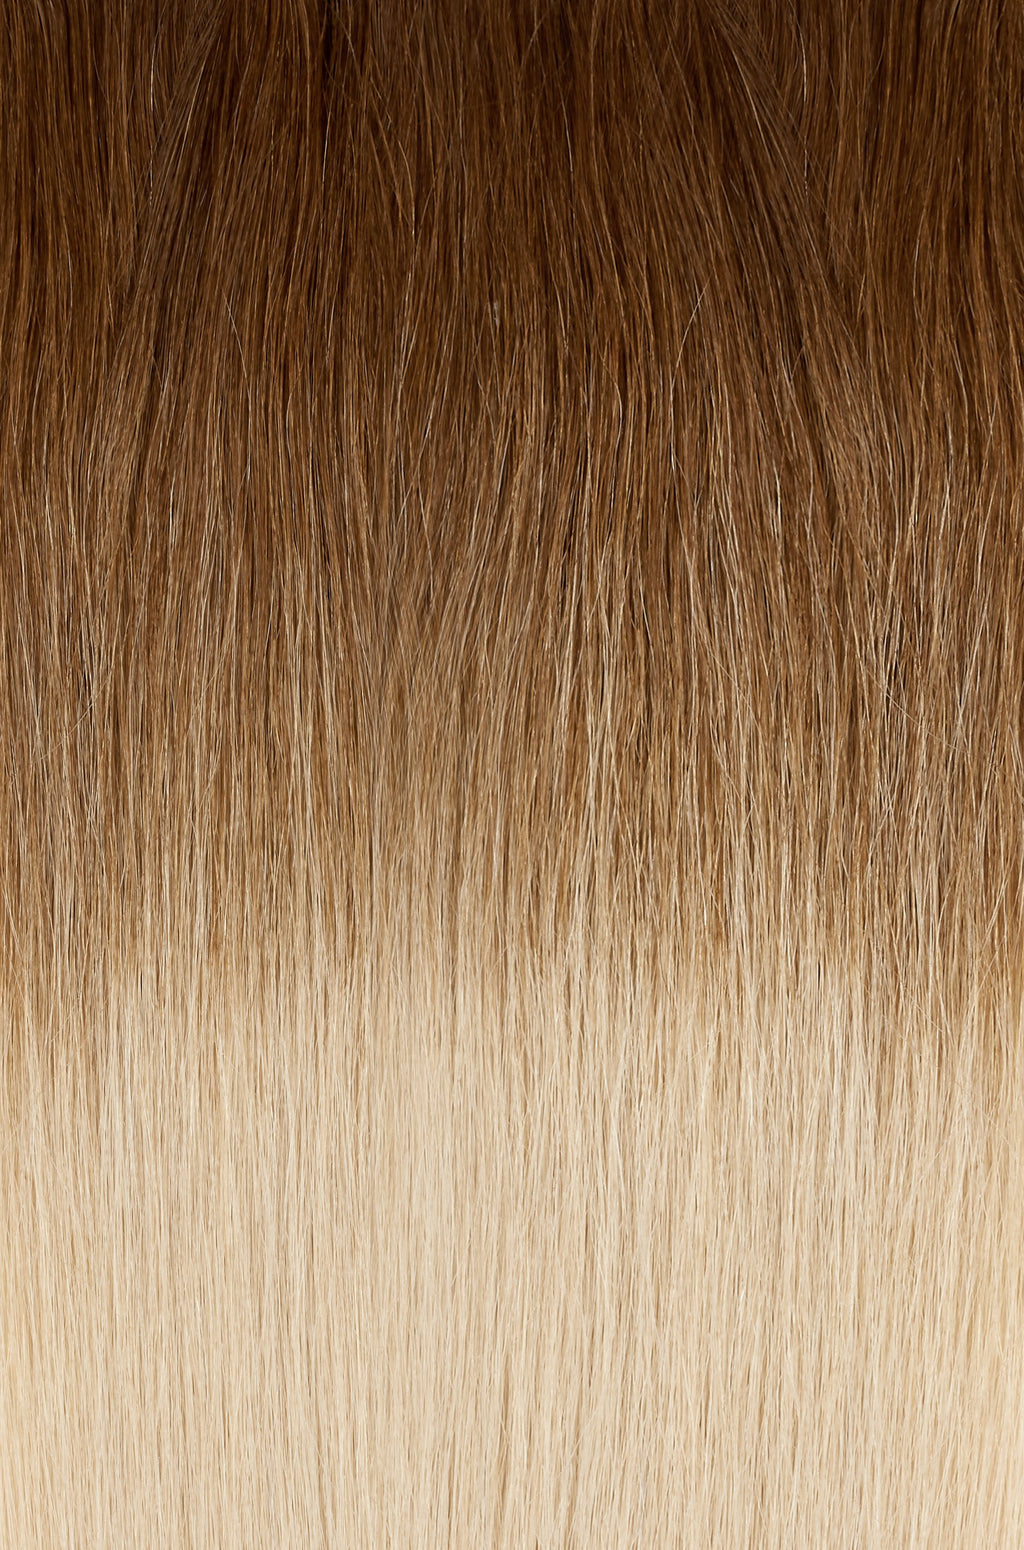 "Ombre - Caramel Brown (#4) to Dirty Blonde (#18B) Tape - BOMBAY HAIR  - Tape-In 22"" 50g"